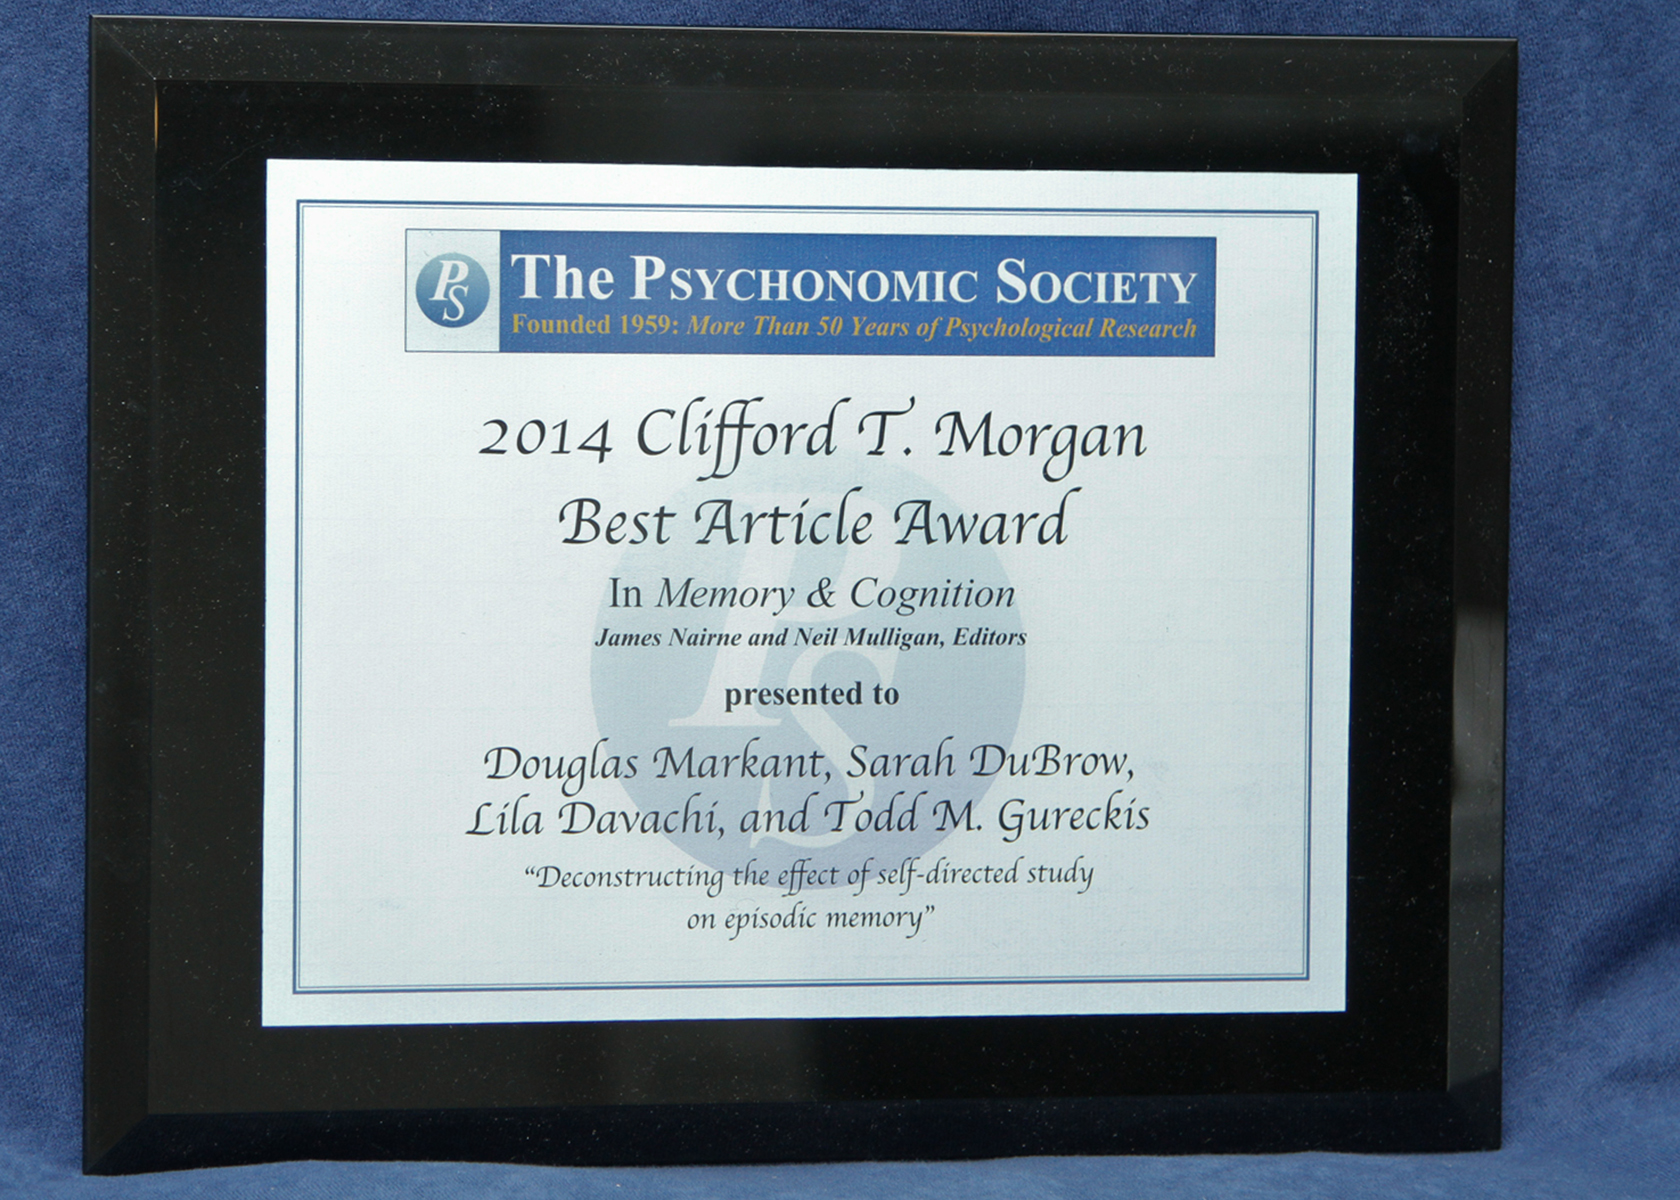 Clifford T. Morgan Best Article Award